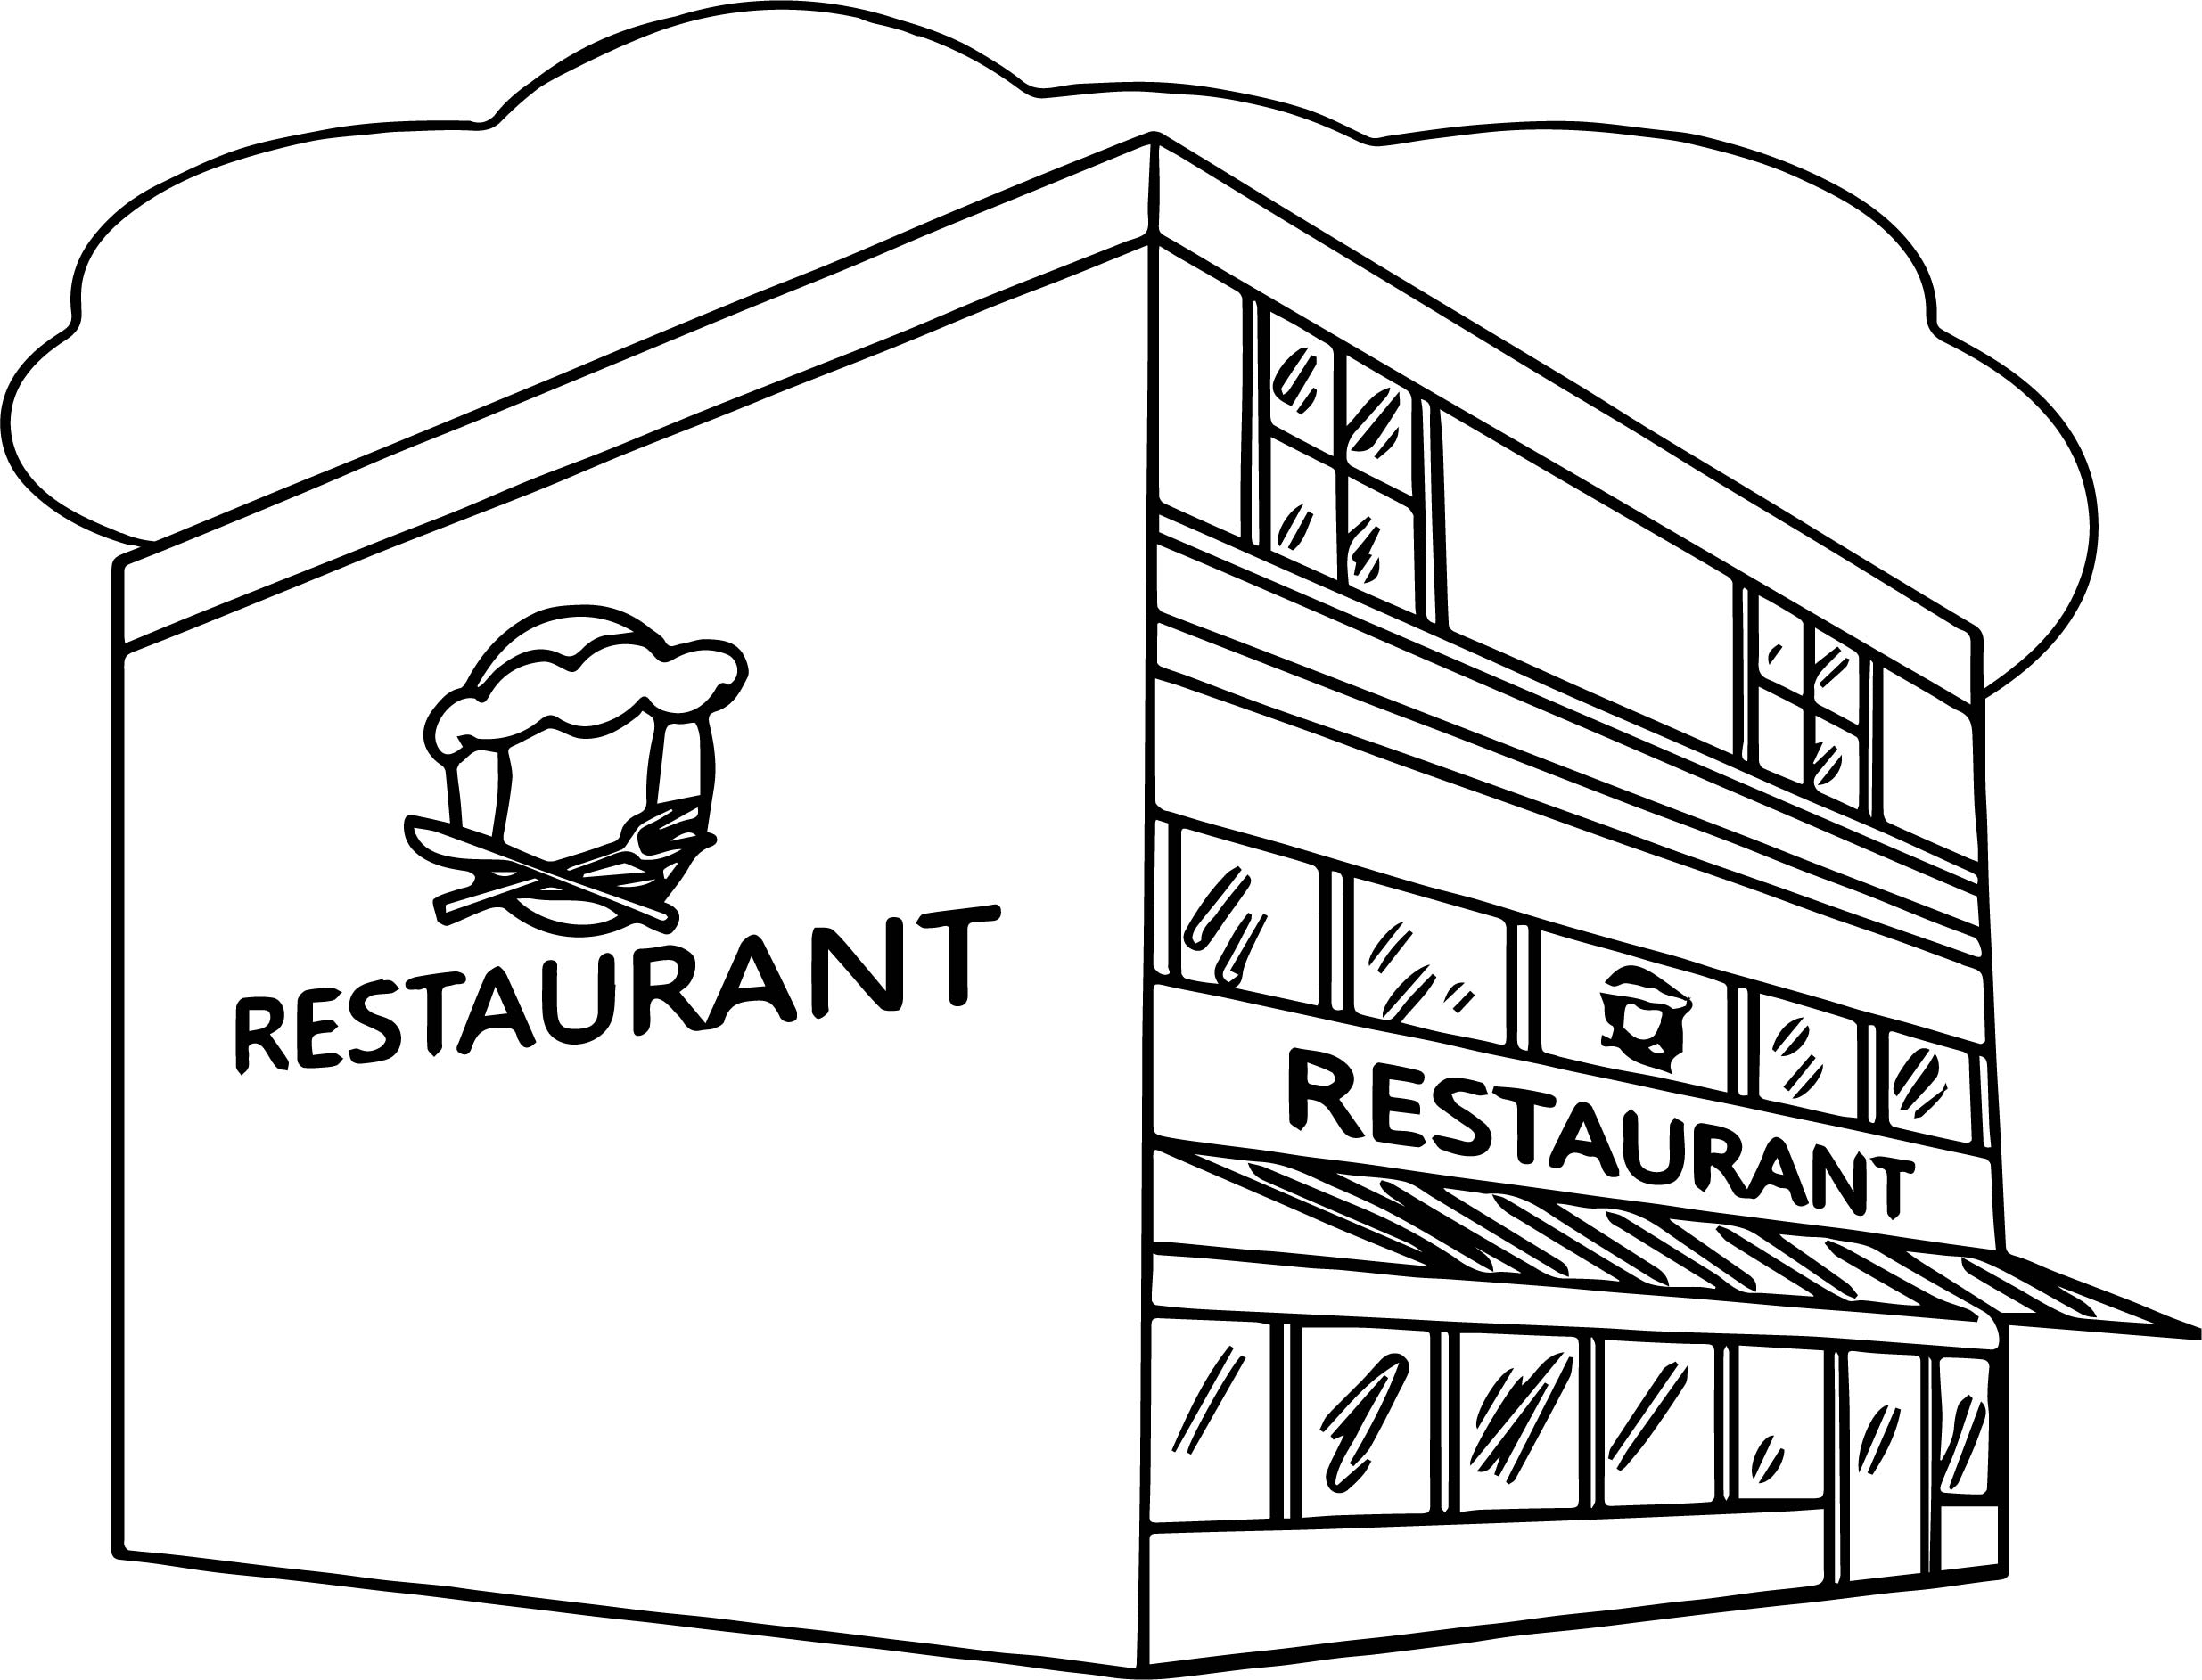 Restaurant Building Great Restaurant Coloring Page Wecoloringpage Printable Of Imprimer Coloriage tous Au Restaurant 2016 to Print